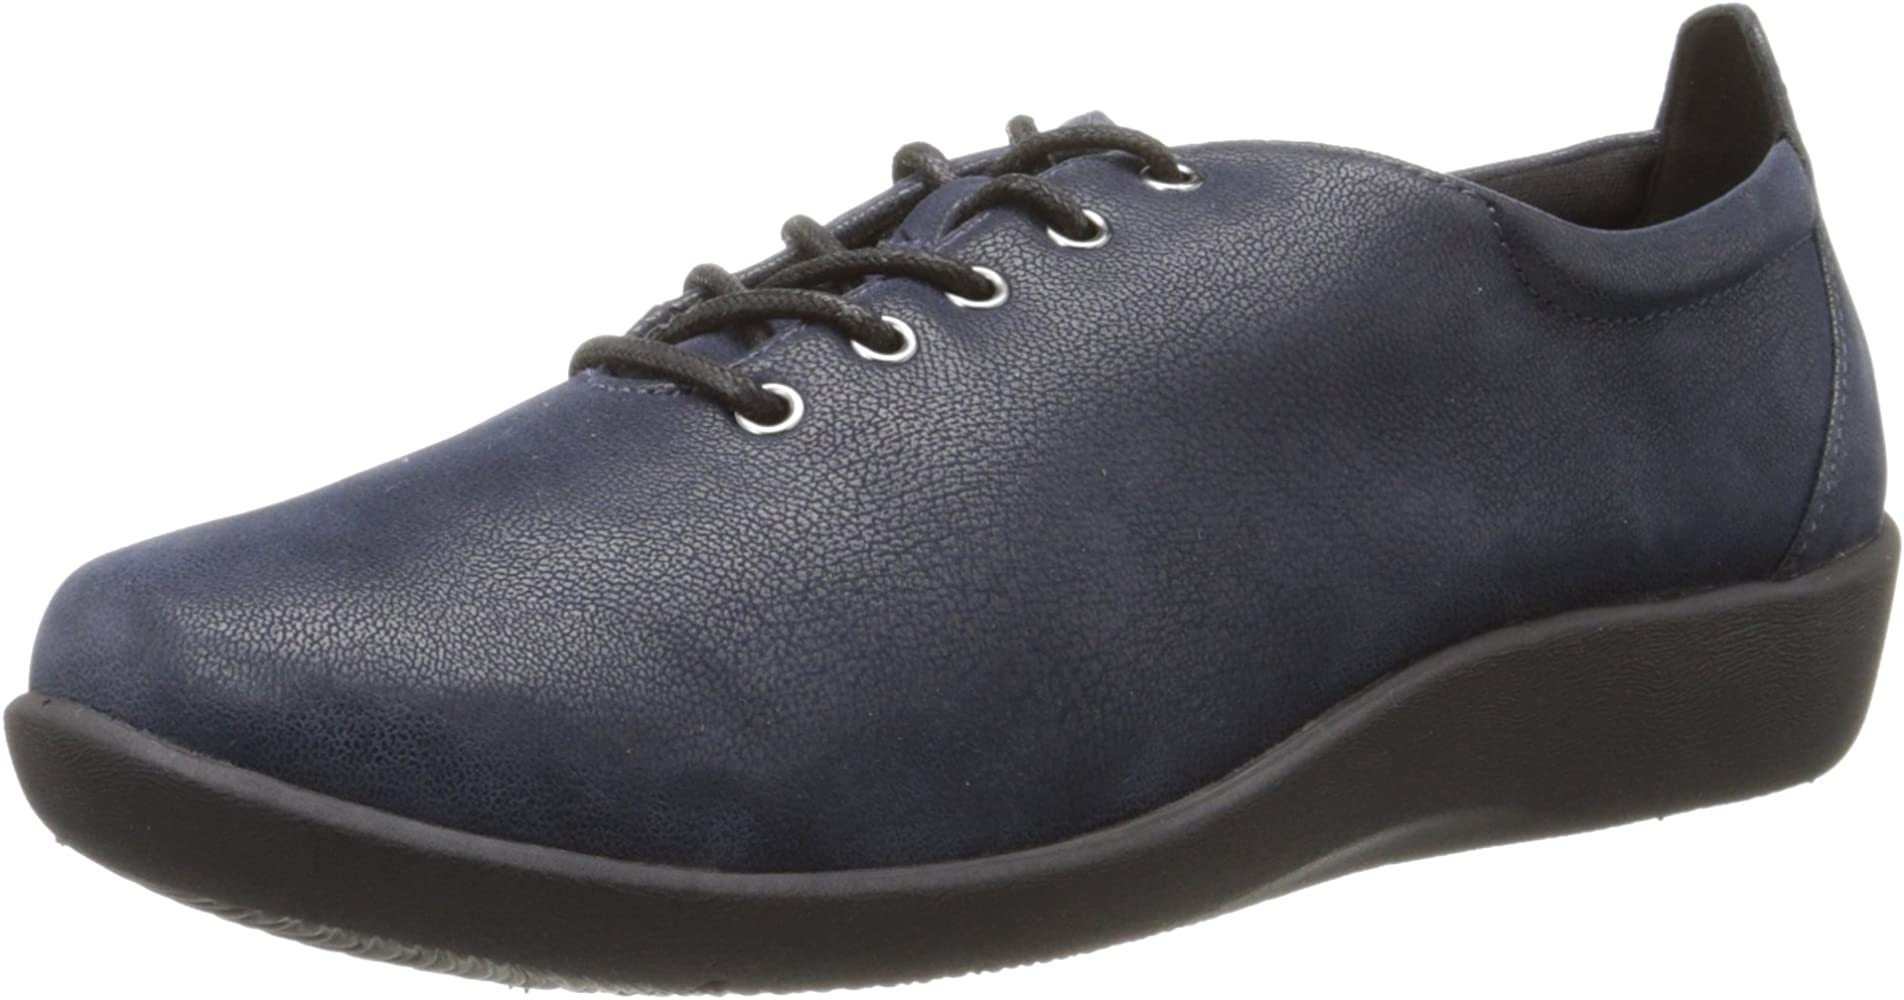 CLARKS Chaussures CloudSteppers Sillian Tino Lace up: Amazon